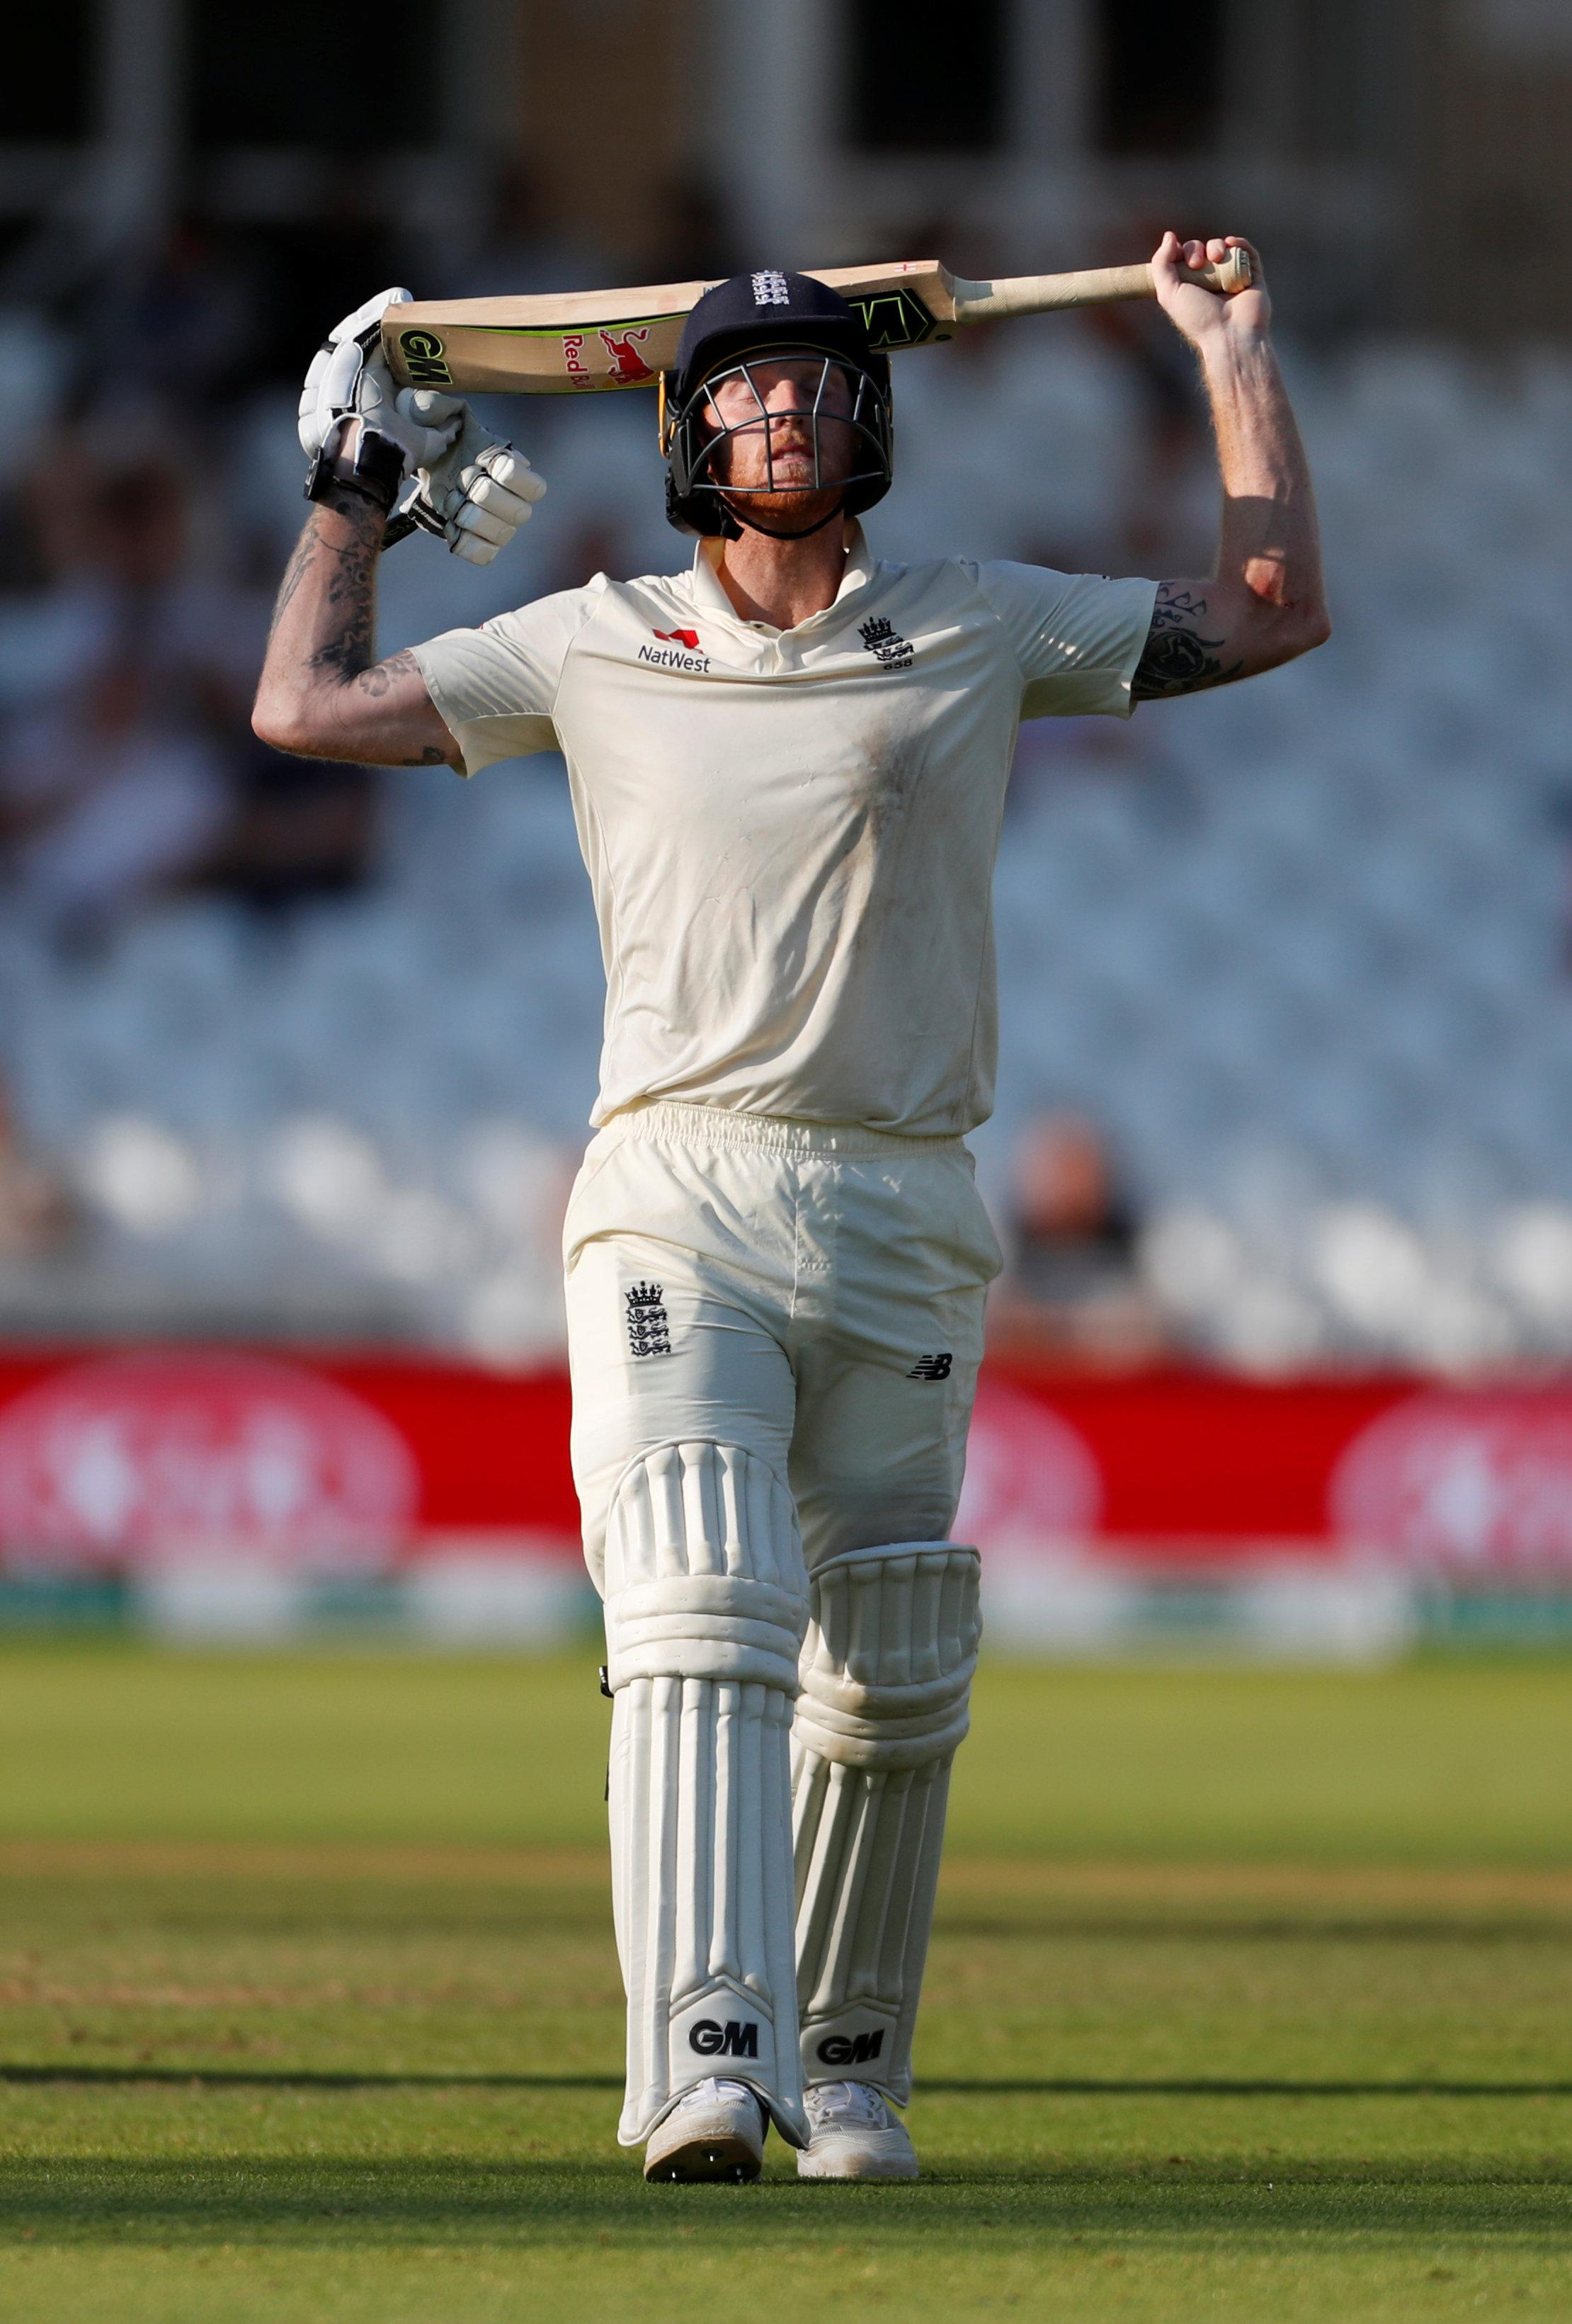 Ben Stokes batted doggedly for his 50, but fell amidst an England collapse